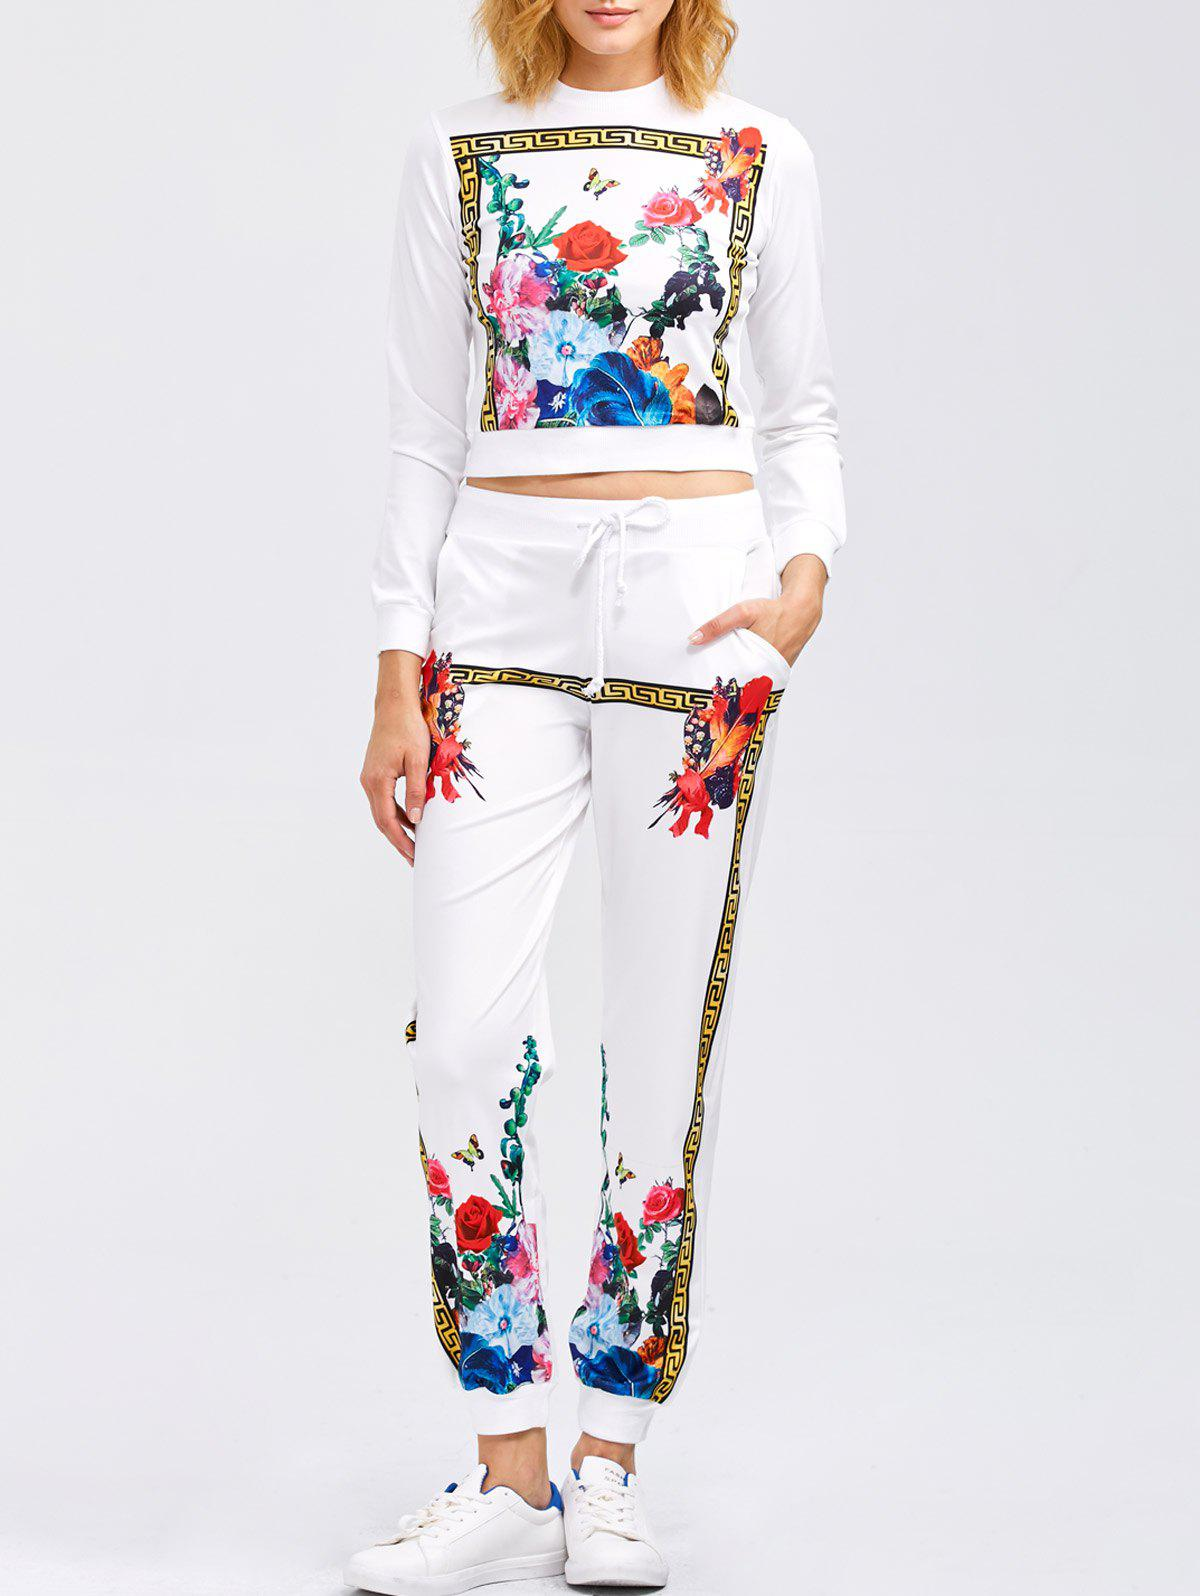 Flower Print Sweatshirt and Jogger PantsWOMEN<br><br>Size: L; Color: WHITE; Style: Fashion; Length: Normal; Material: Polyester; Fit Type: Regular; Waist Type: Mid; Closure Type: Drawstring; Pattern Type: Floral; Pant Style: Pencil Pants; Weight: 0.445kg; Package Contents: 1 x Sweatshirt 1 x Pants;